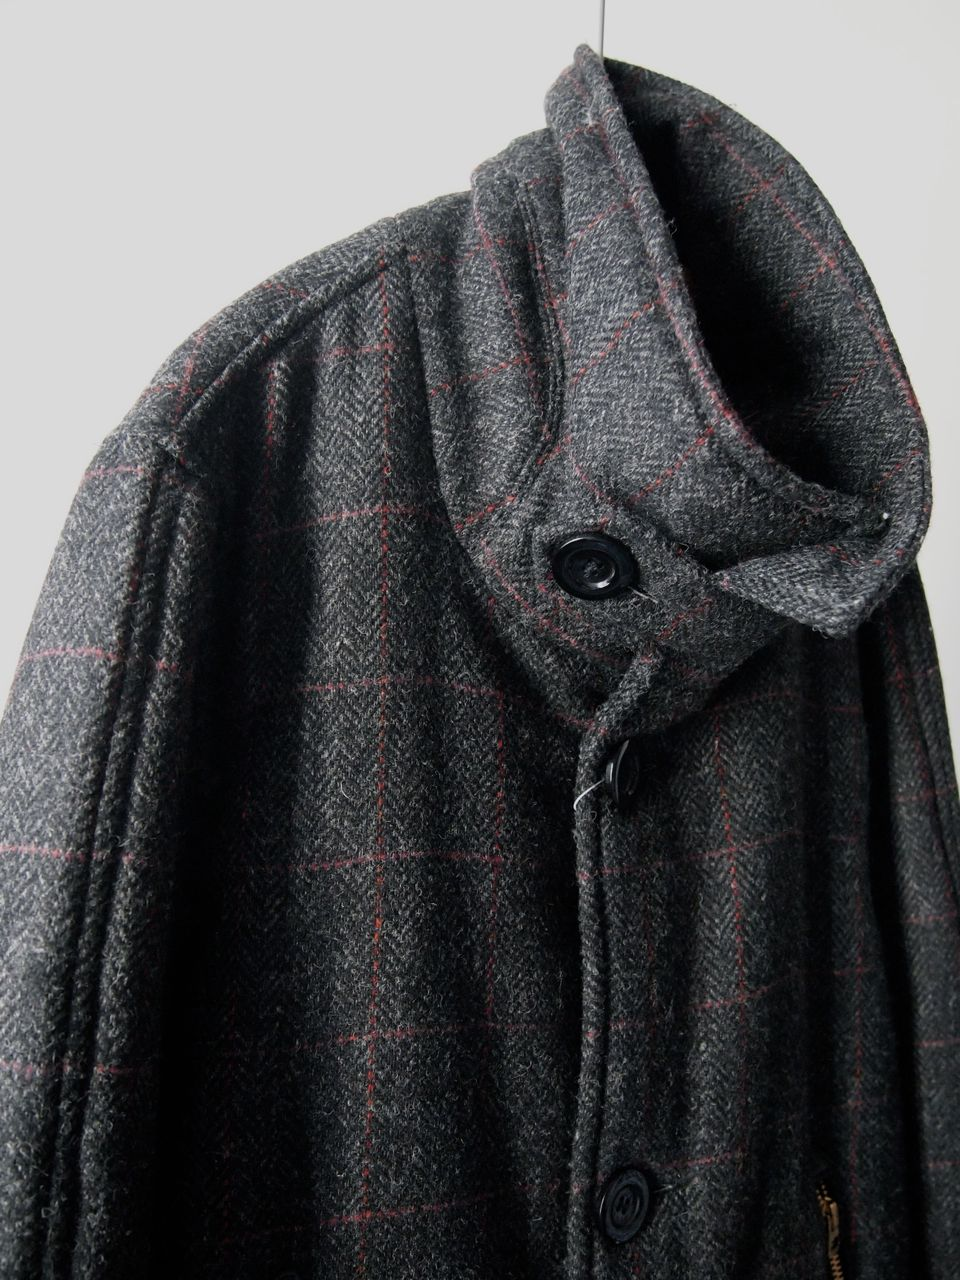 Honnetefrancesinglepeacoatenglandtweed05.jpg